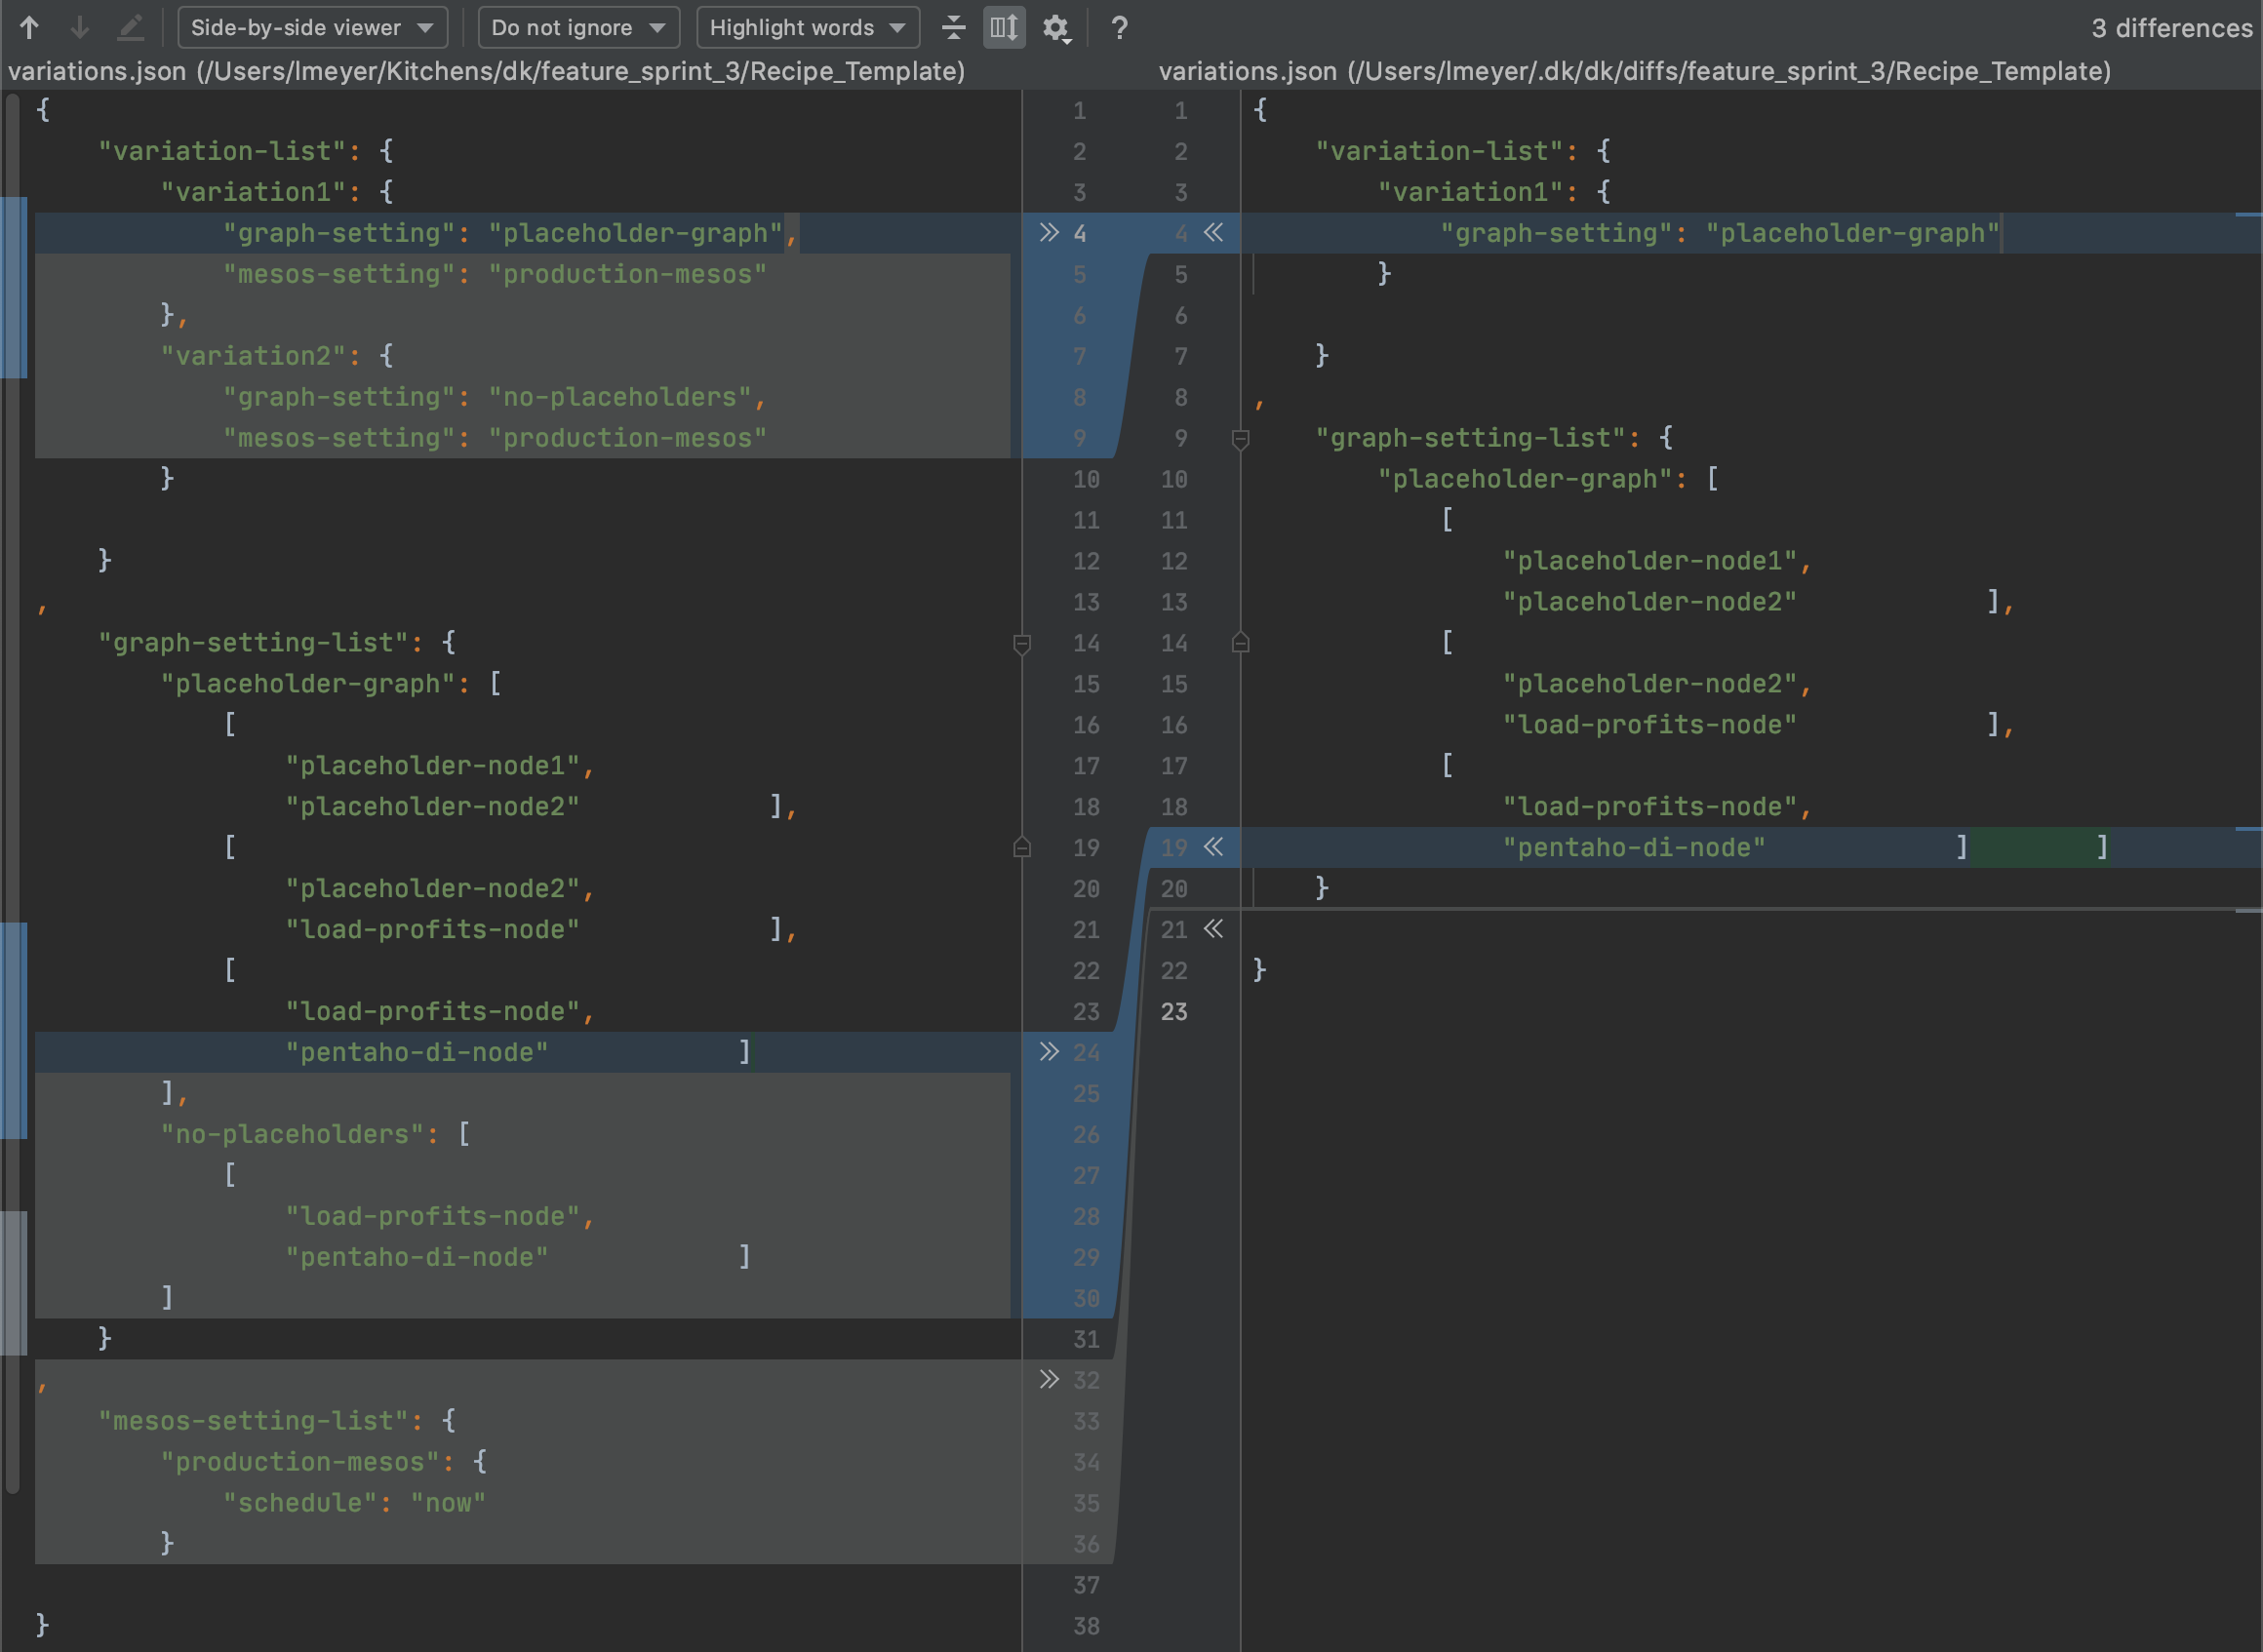 File differential between the local (left) and remote (right) copies of variations.json viewed in PyCharm.